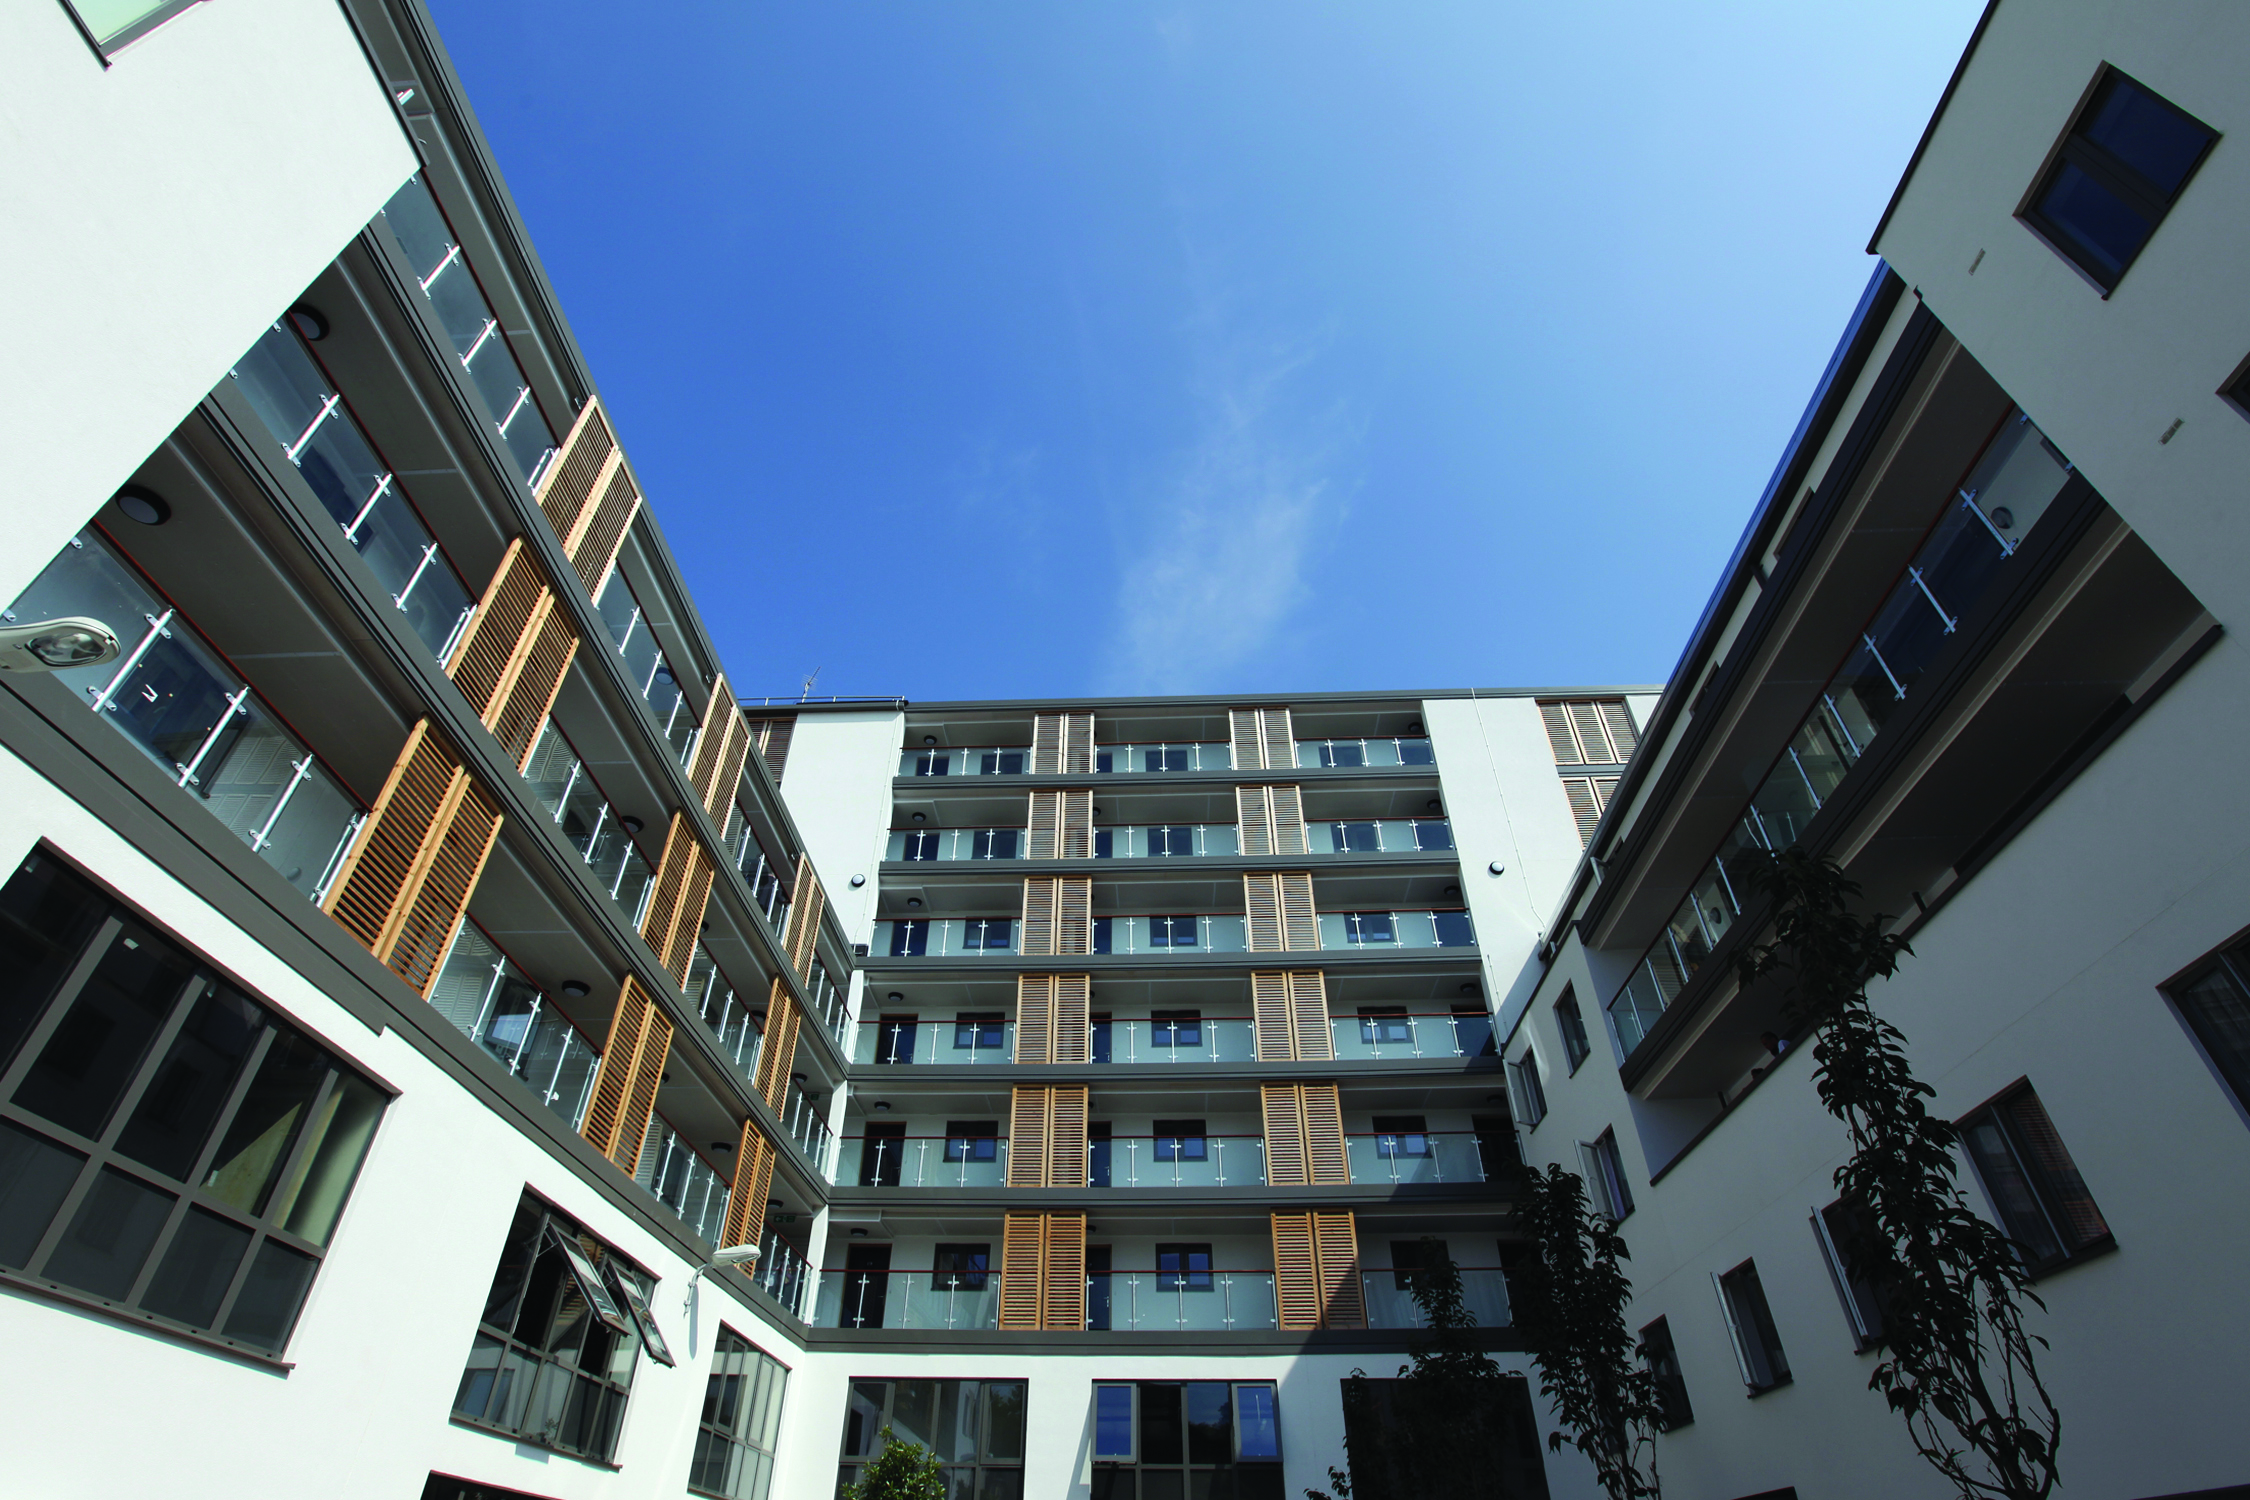 Featuring One Housing: Interview with Matthew Saye, Director